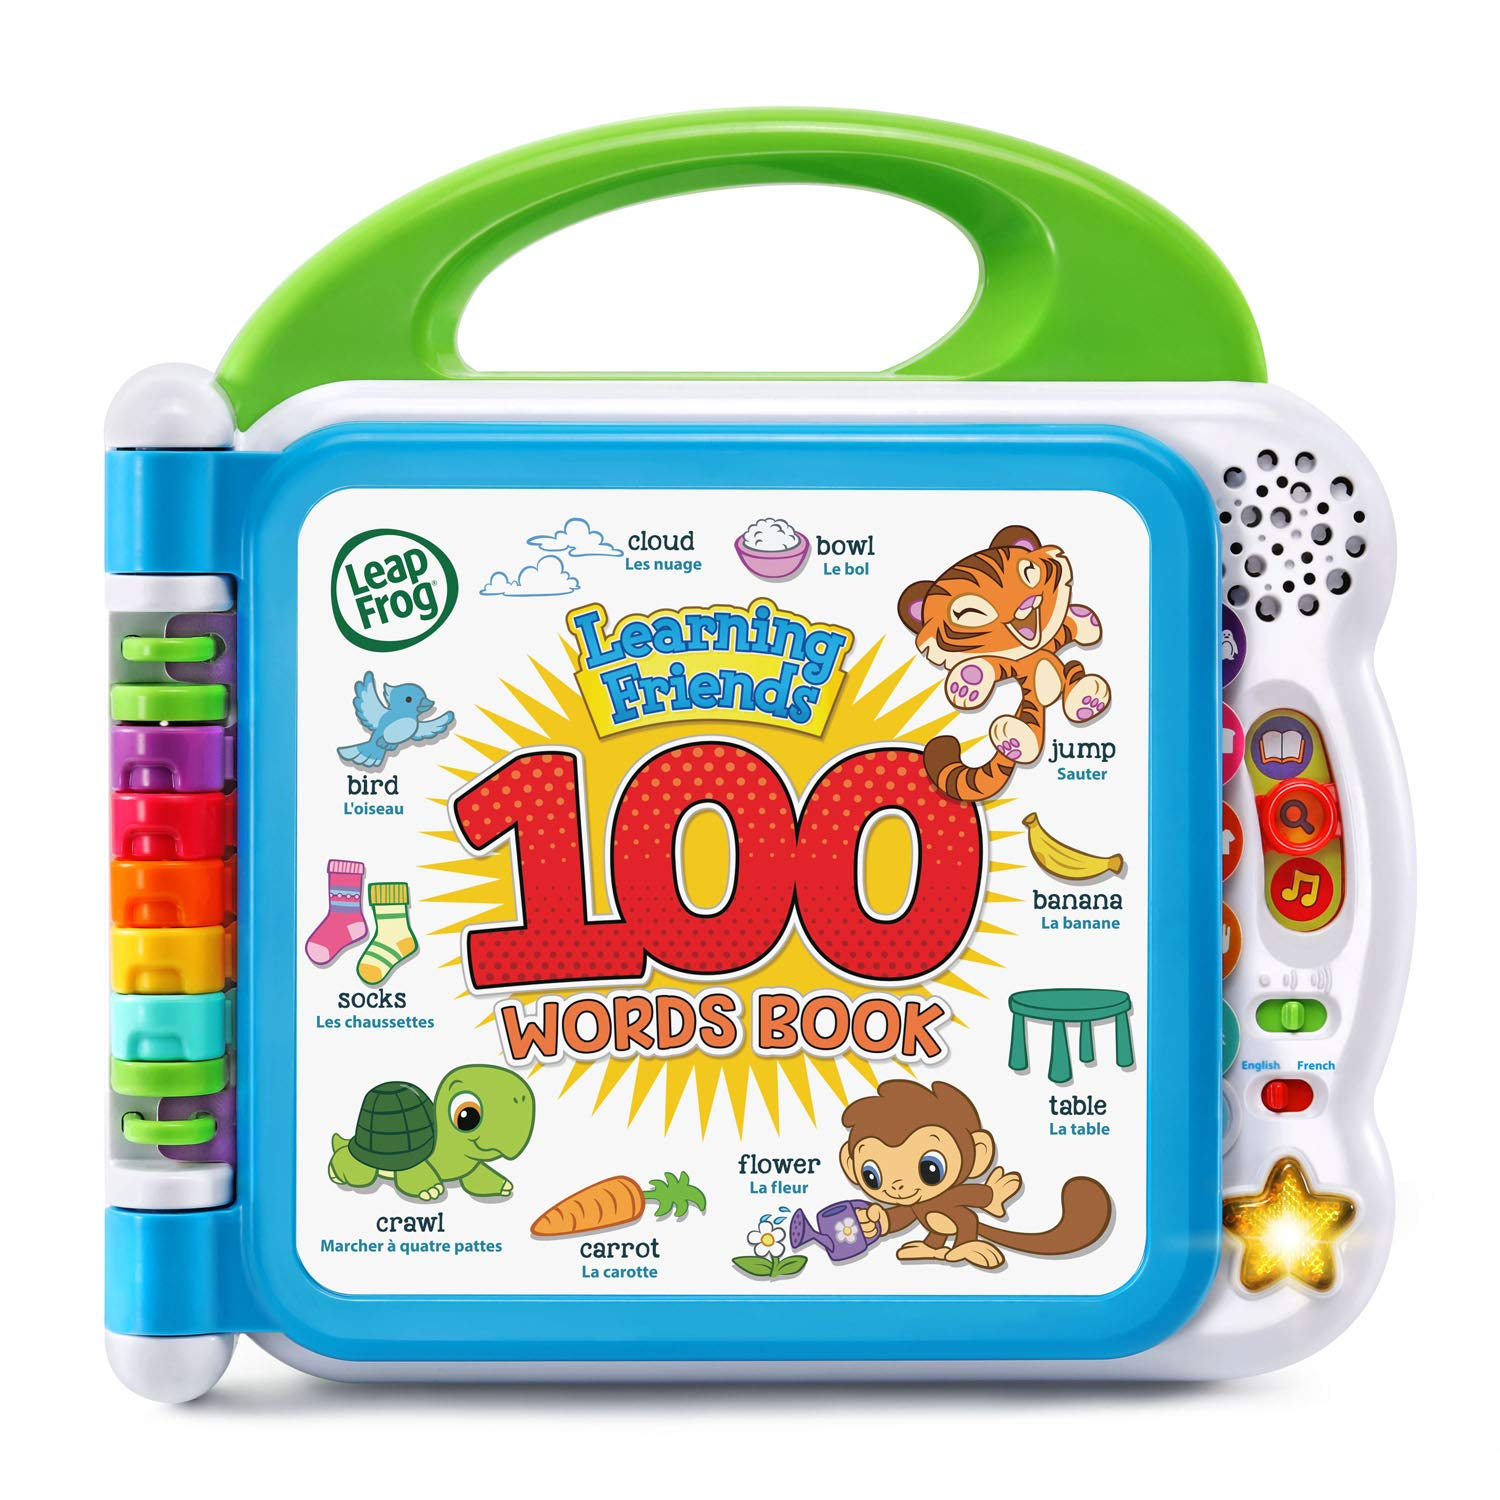 LeapFrog Learning Friends 100 Words Book, Green by LeapFrog (Image #1)